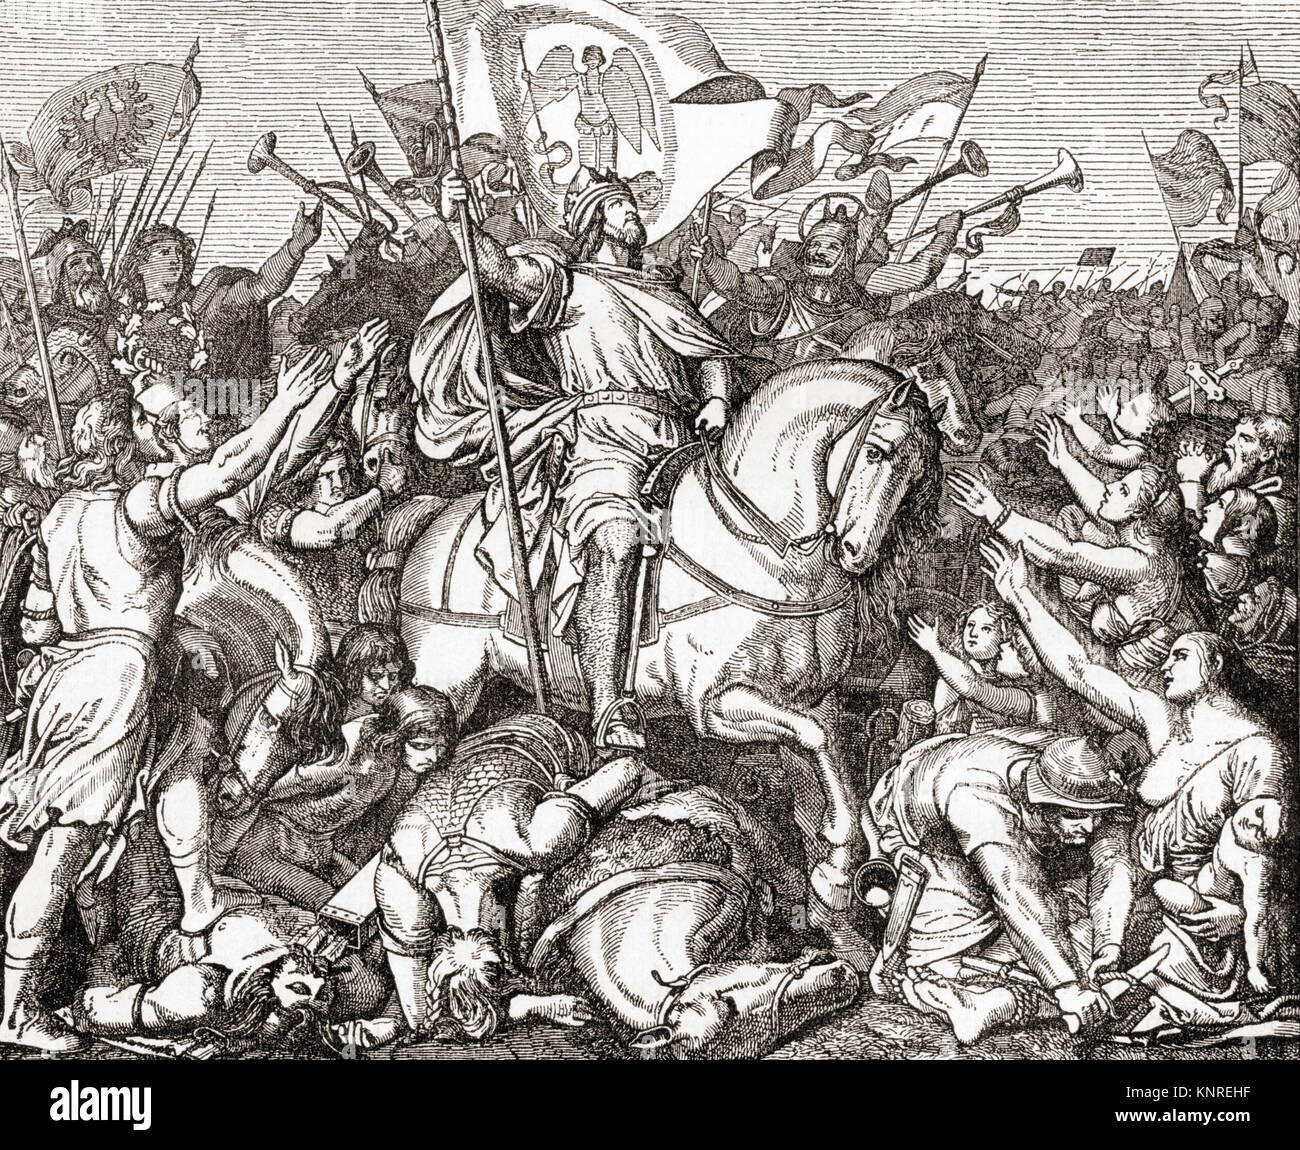 Henry I after The Battle of Riade aka Battle of Merseburg, Germany, 933.  Henry the Fowler, aka Henry I, 876 – 936. - Stock Image